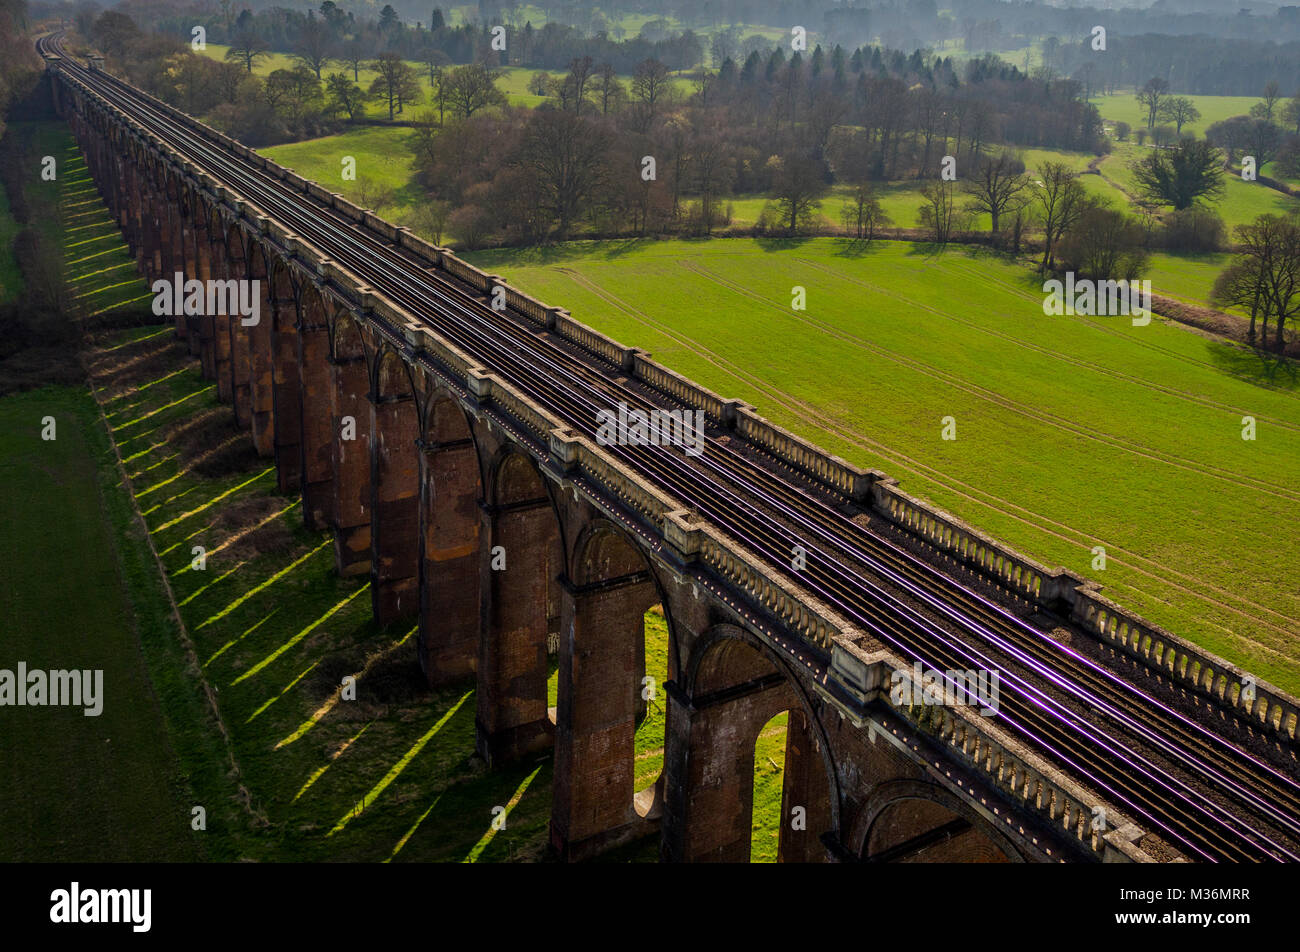 Ouse Valley Viaduct, Sussex, UK Aerial view - Stock Image